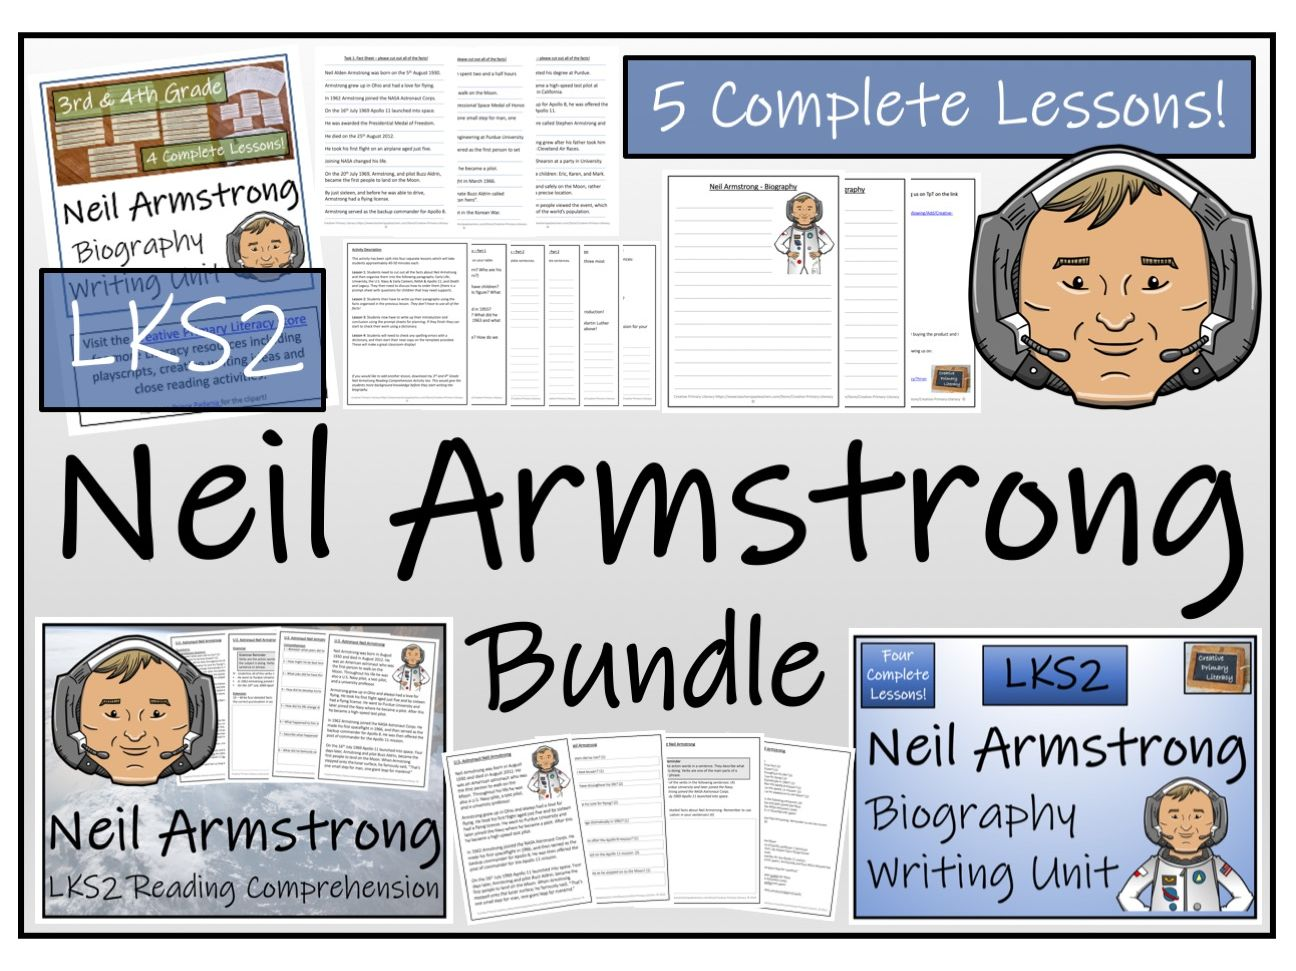 LKS2 Neil Armstrong Reading Comprehension & Biography Bundle